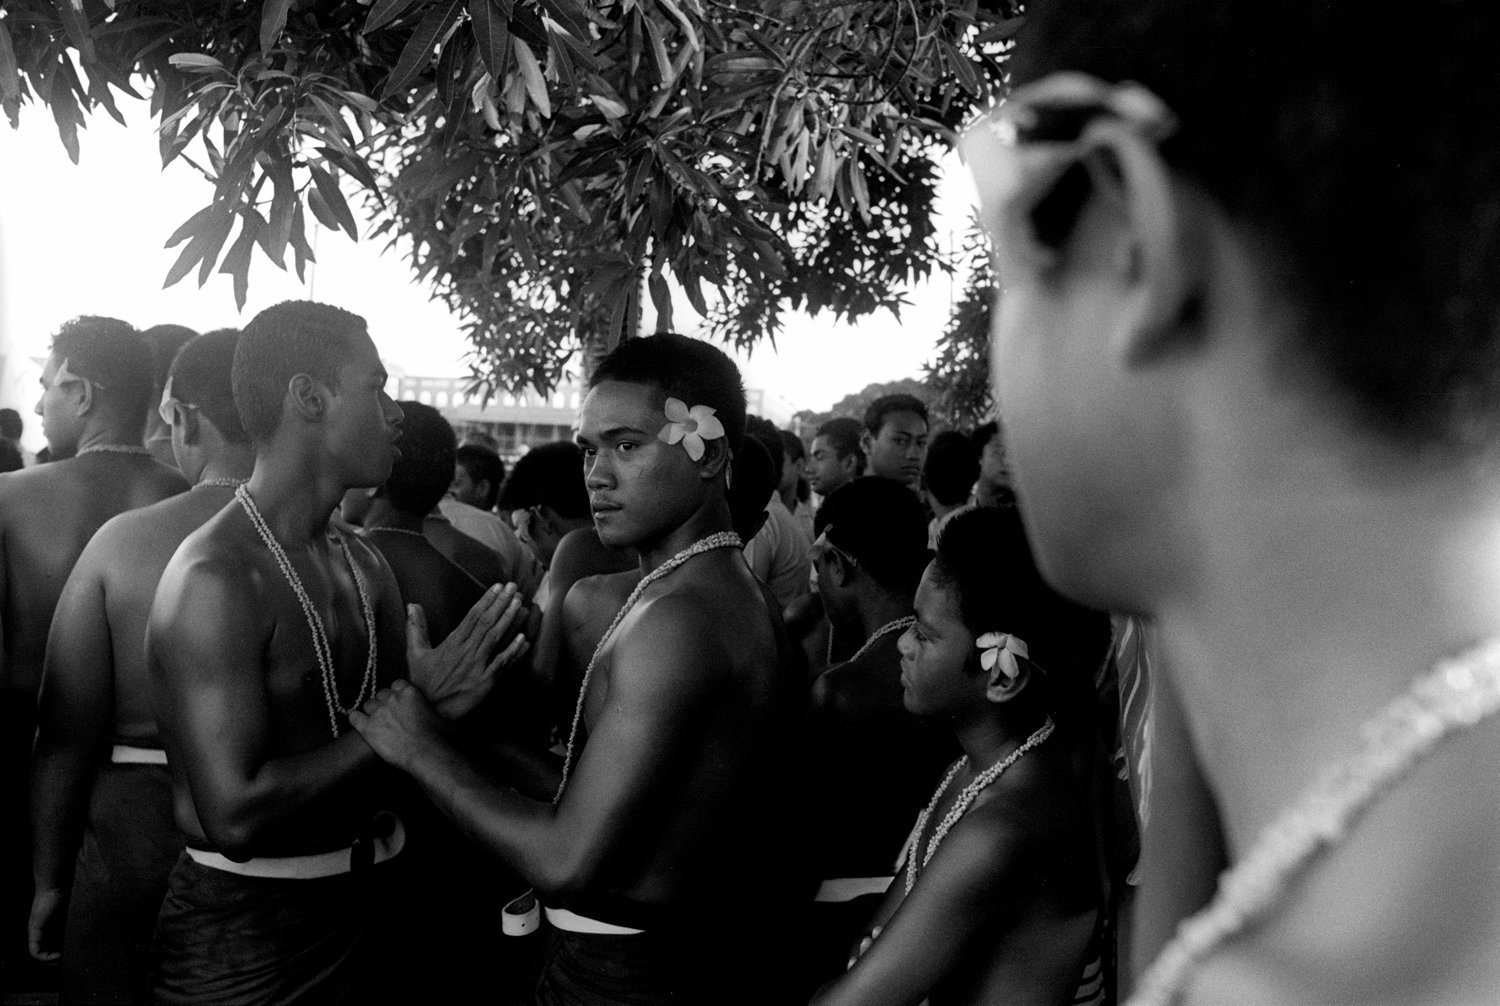 Tamara Voninski / oculi / vu